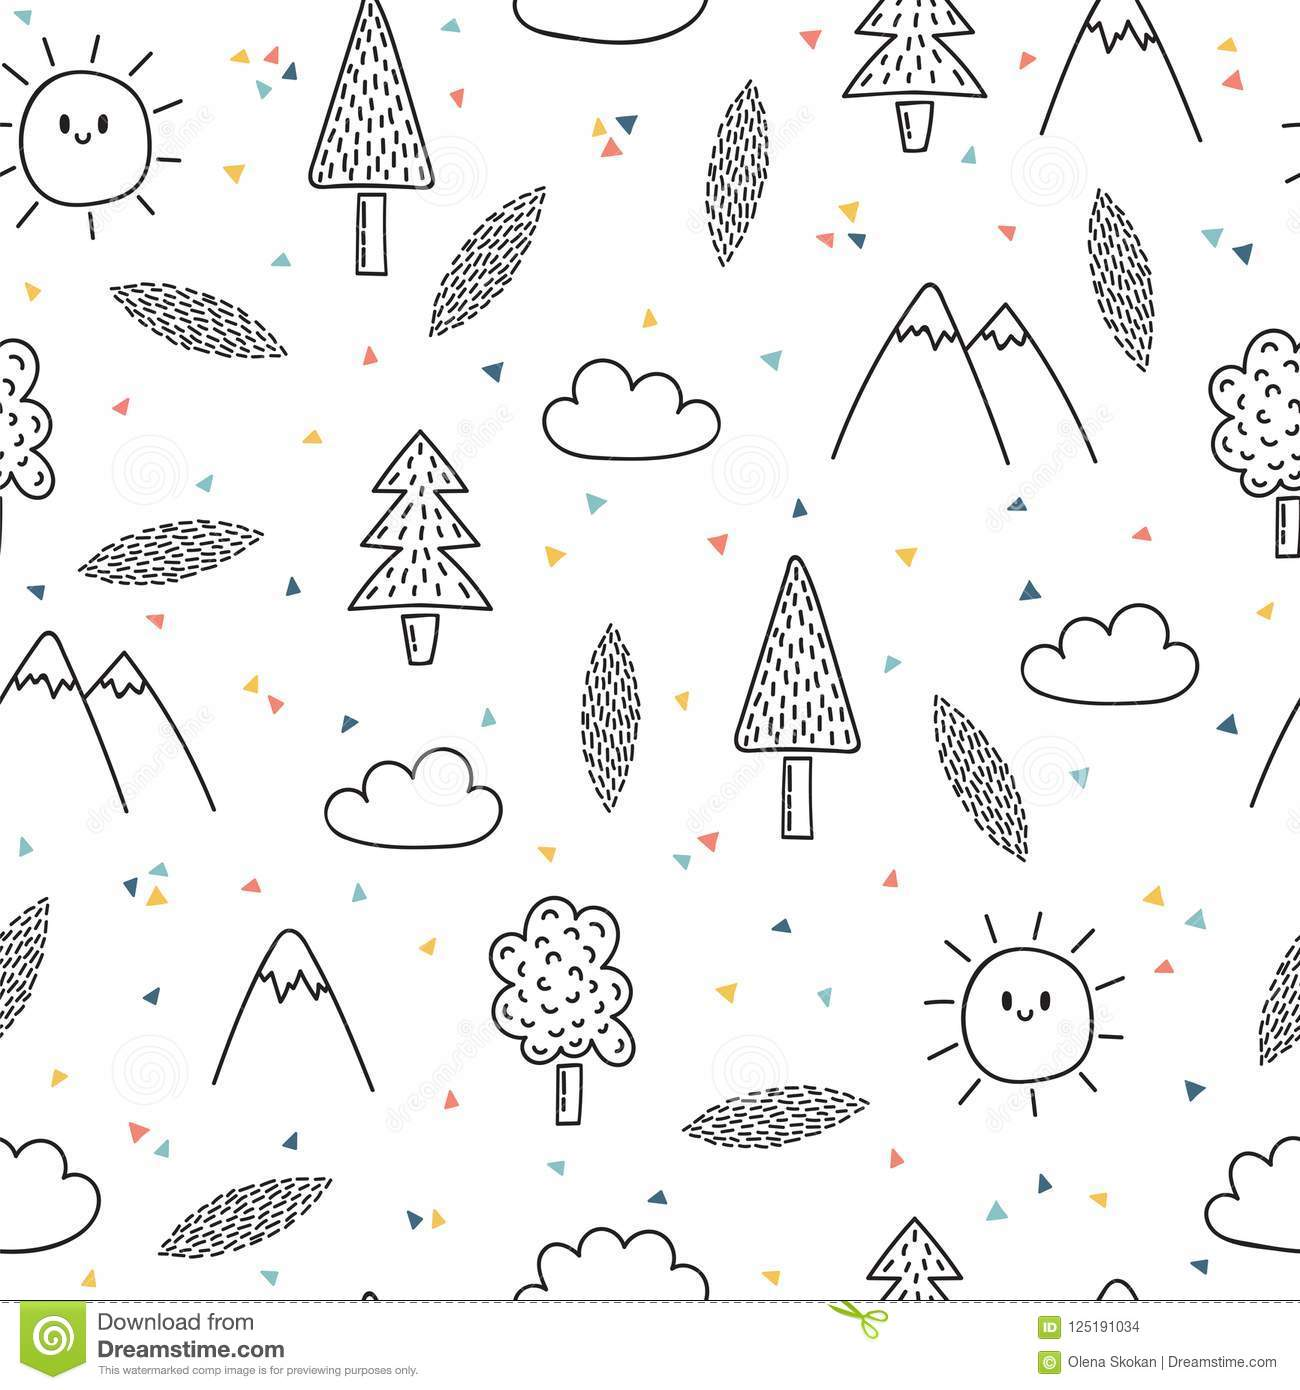 Hand drawn seamless pattern with trees and mountains creative ethnic scandinavian woodland background abstract geometric art print vector illustration